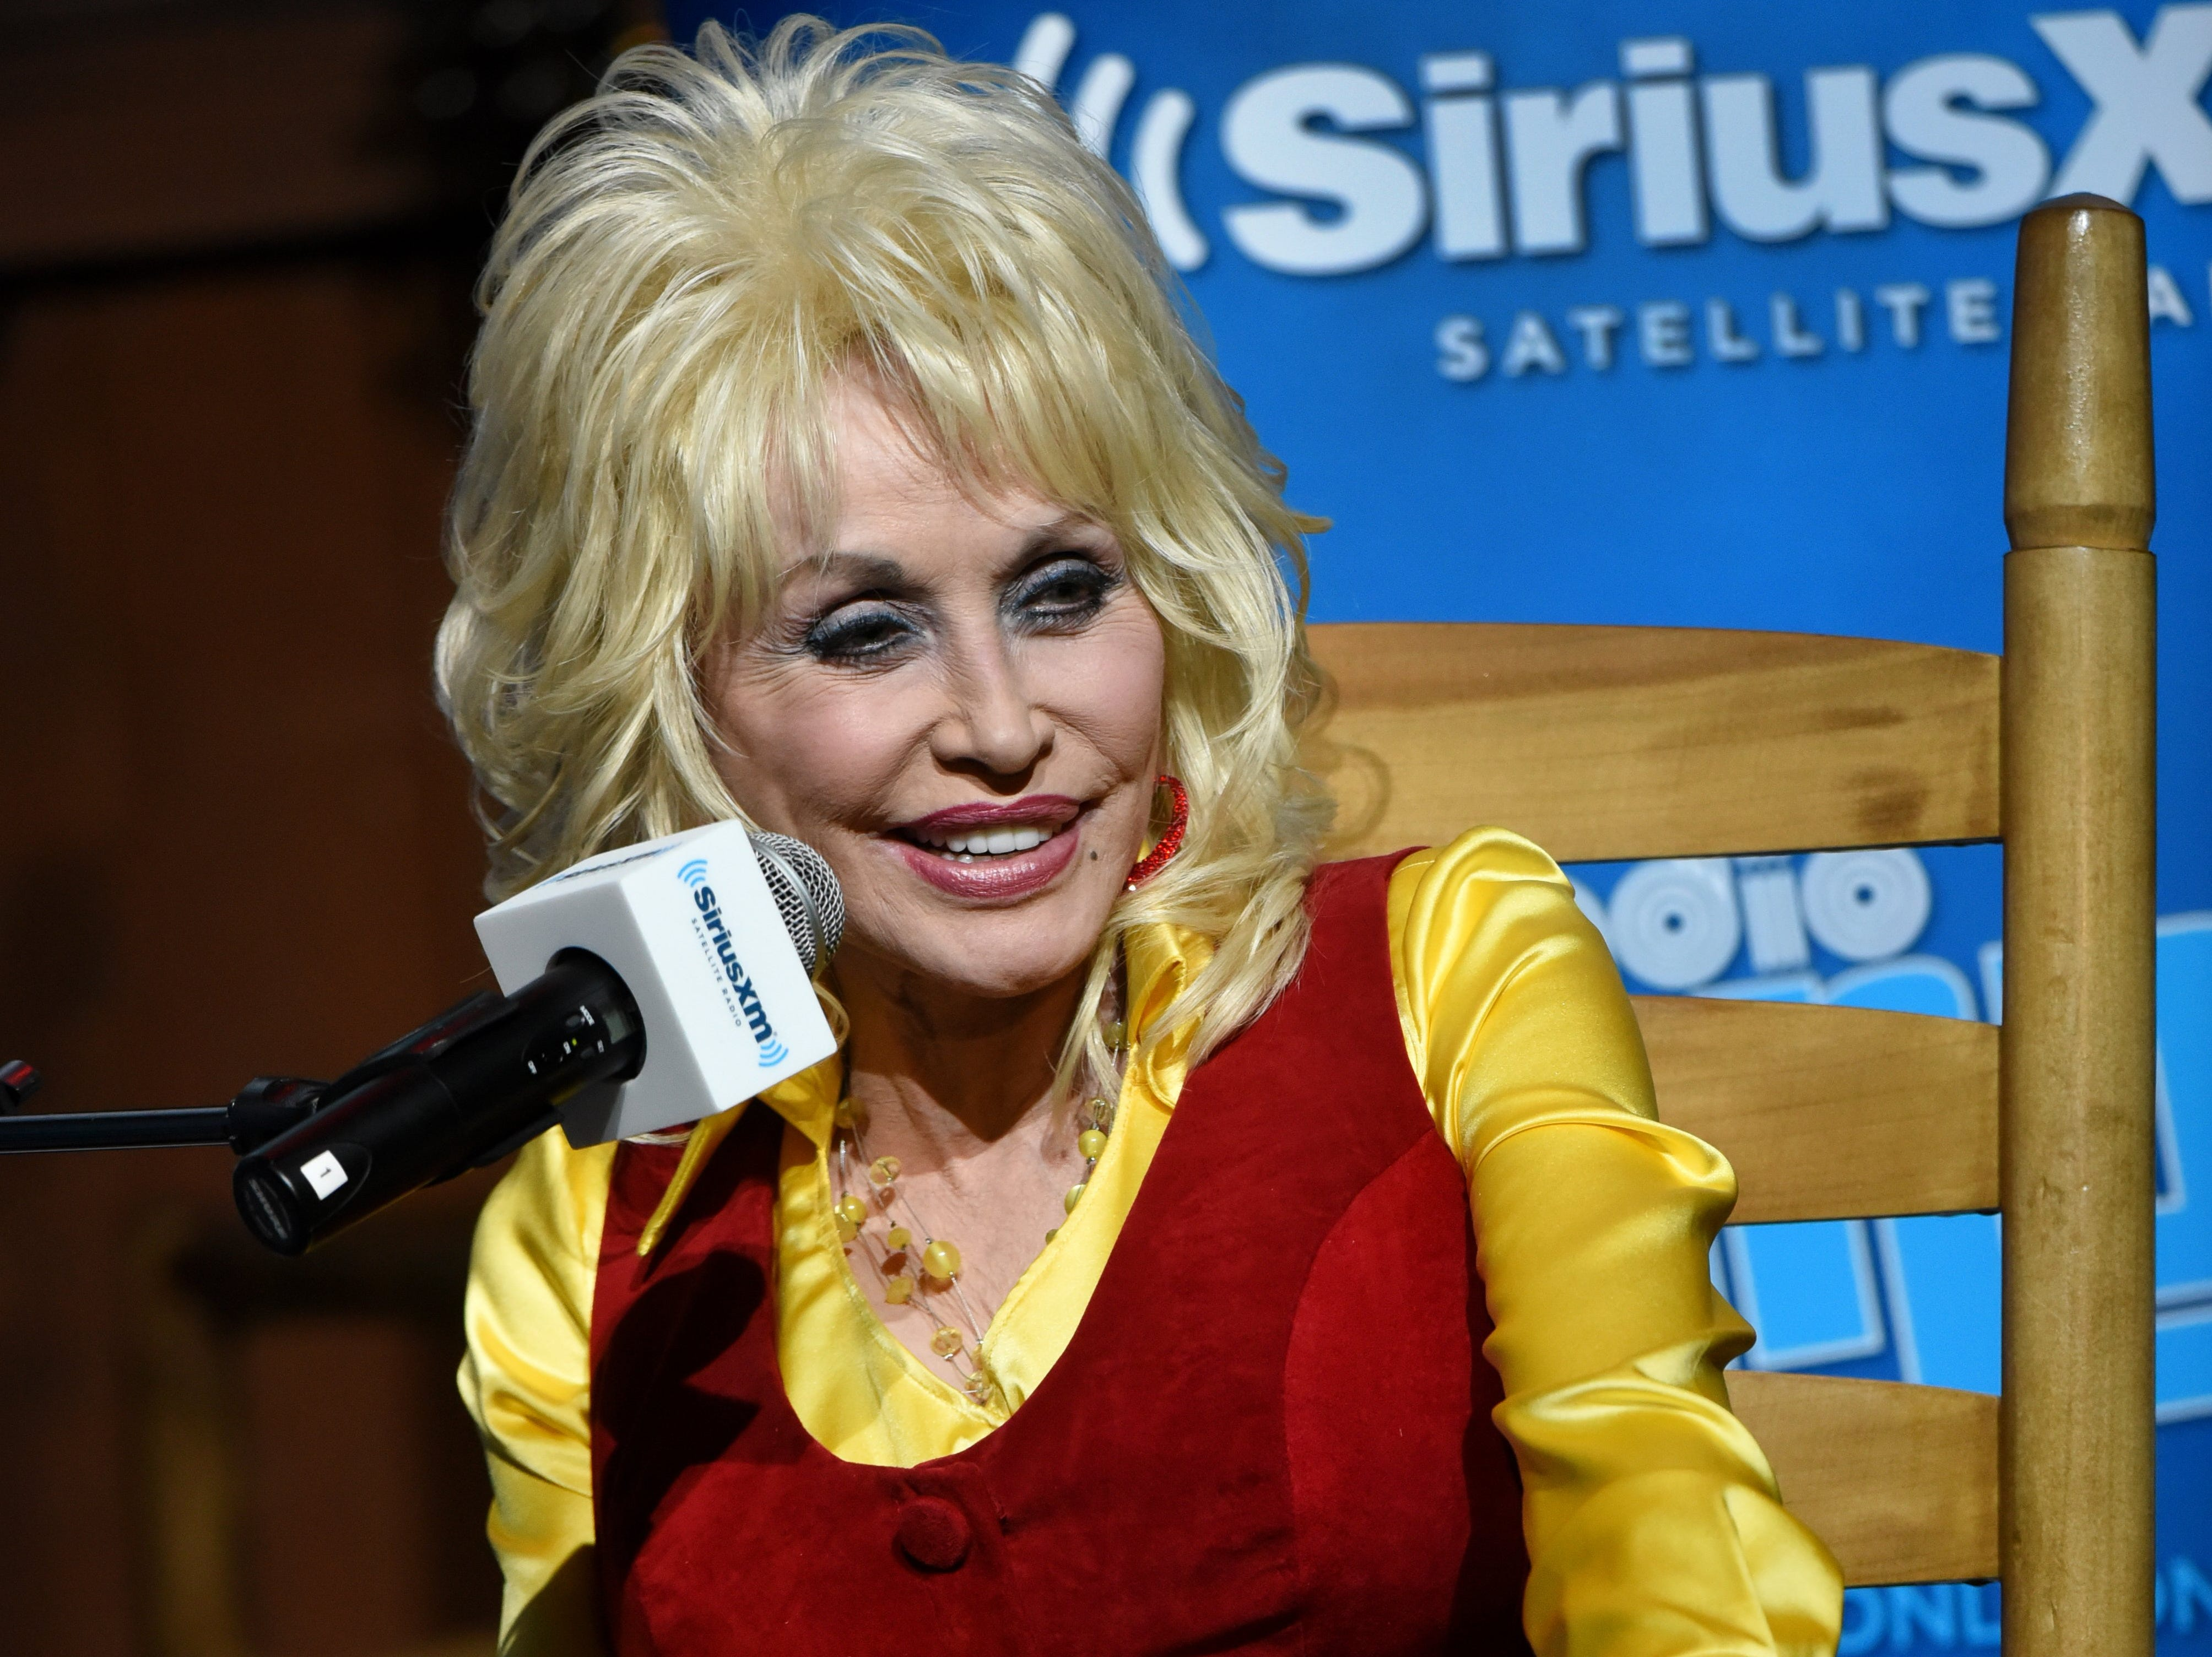 Dolly Parton during a live town hall radio chat with SiriusXM Radio host and TV producer Andy Cohen at Dollywood Friday, May 6, 2016. SiriusXM radio subscribers were allowed to submit questions to ask Parton and the winners traveled to the airing to ask their questions during the show.